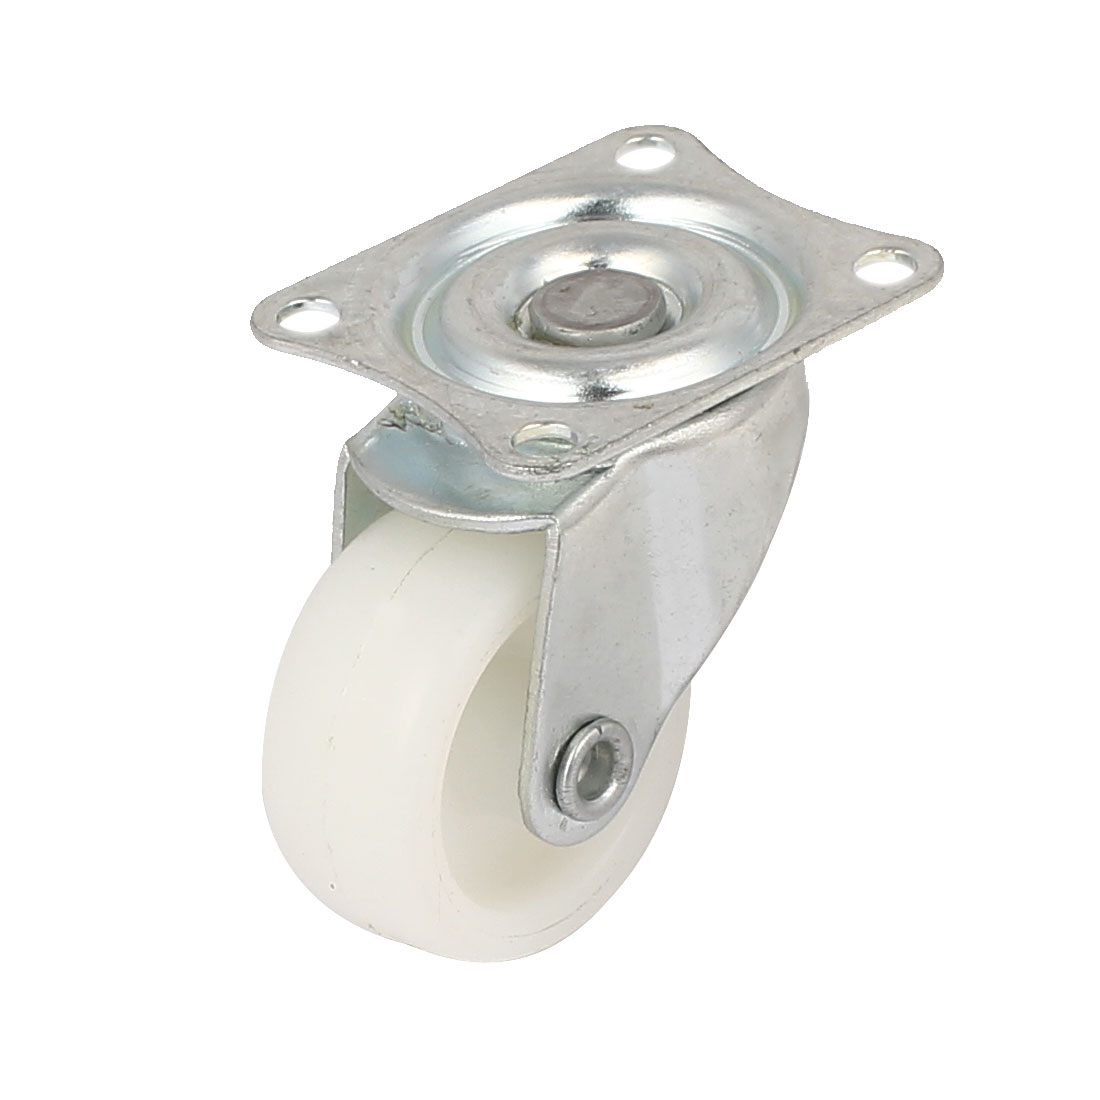 "1.2"" Dia 360 Degree Top Plate Nylon Swivel Caster Wheel White"